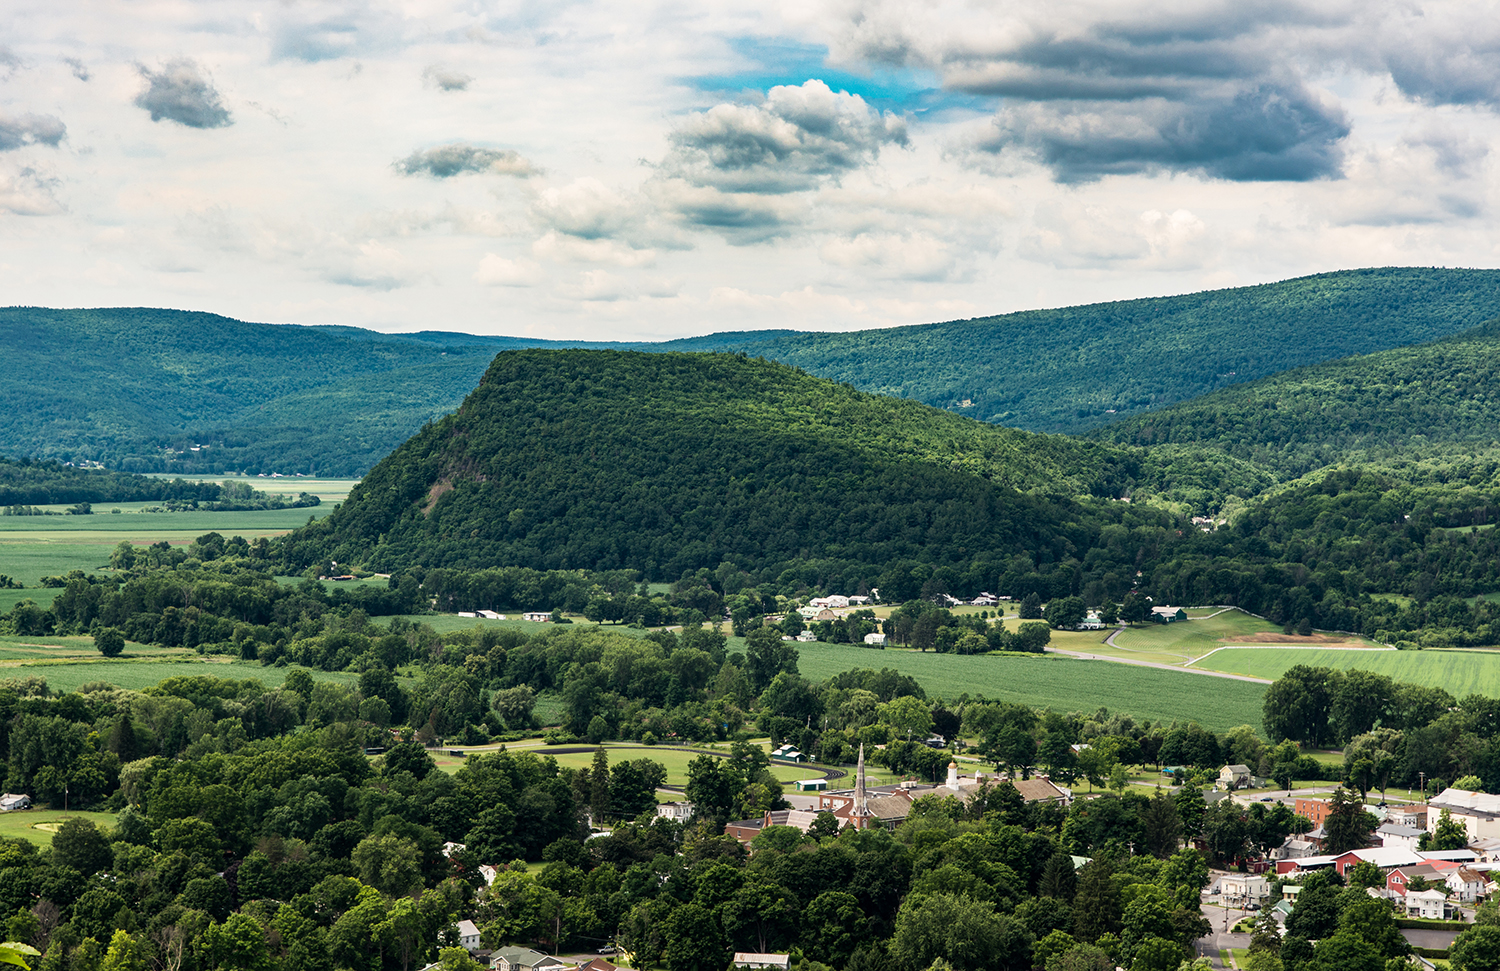 Vroman's Nose and the town of Middleburgh. Steve Aaron Photography